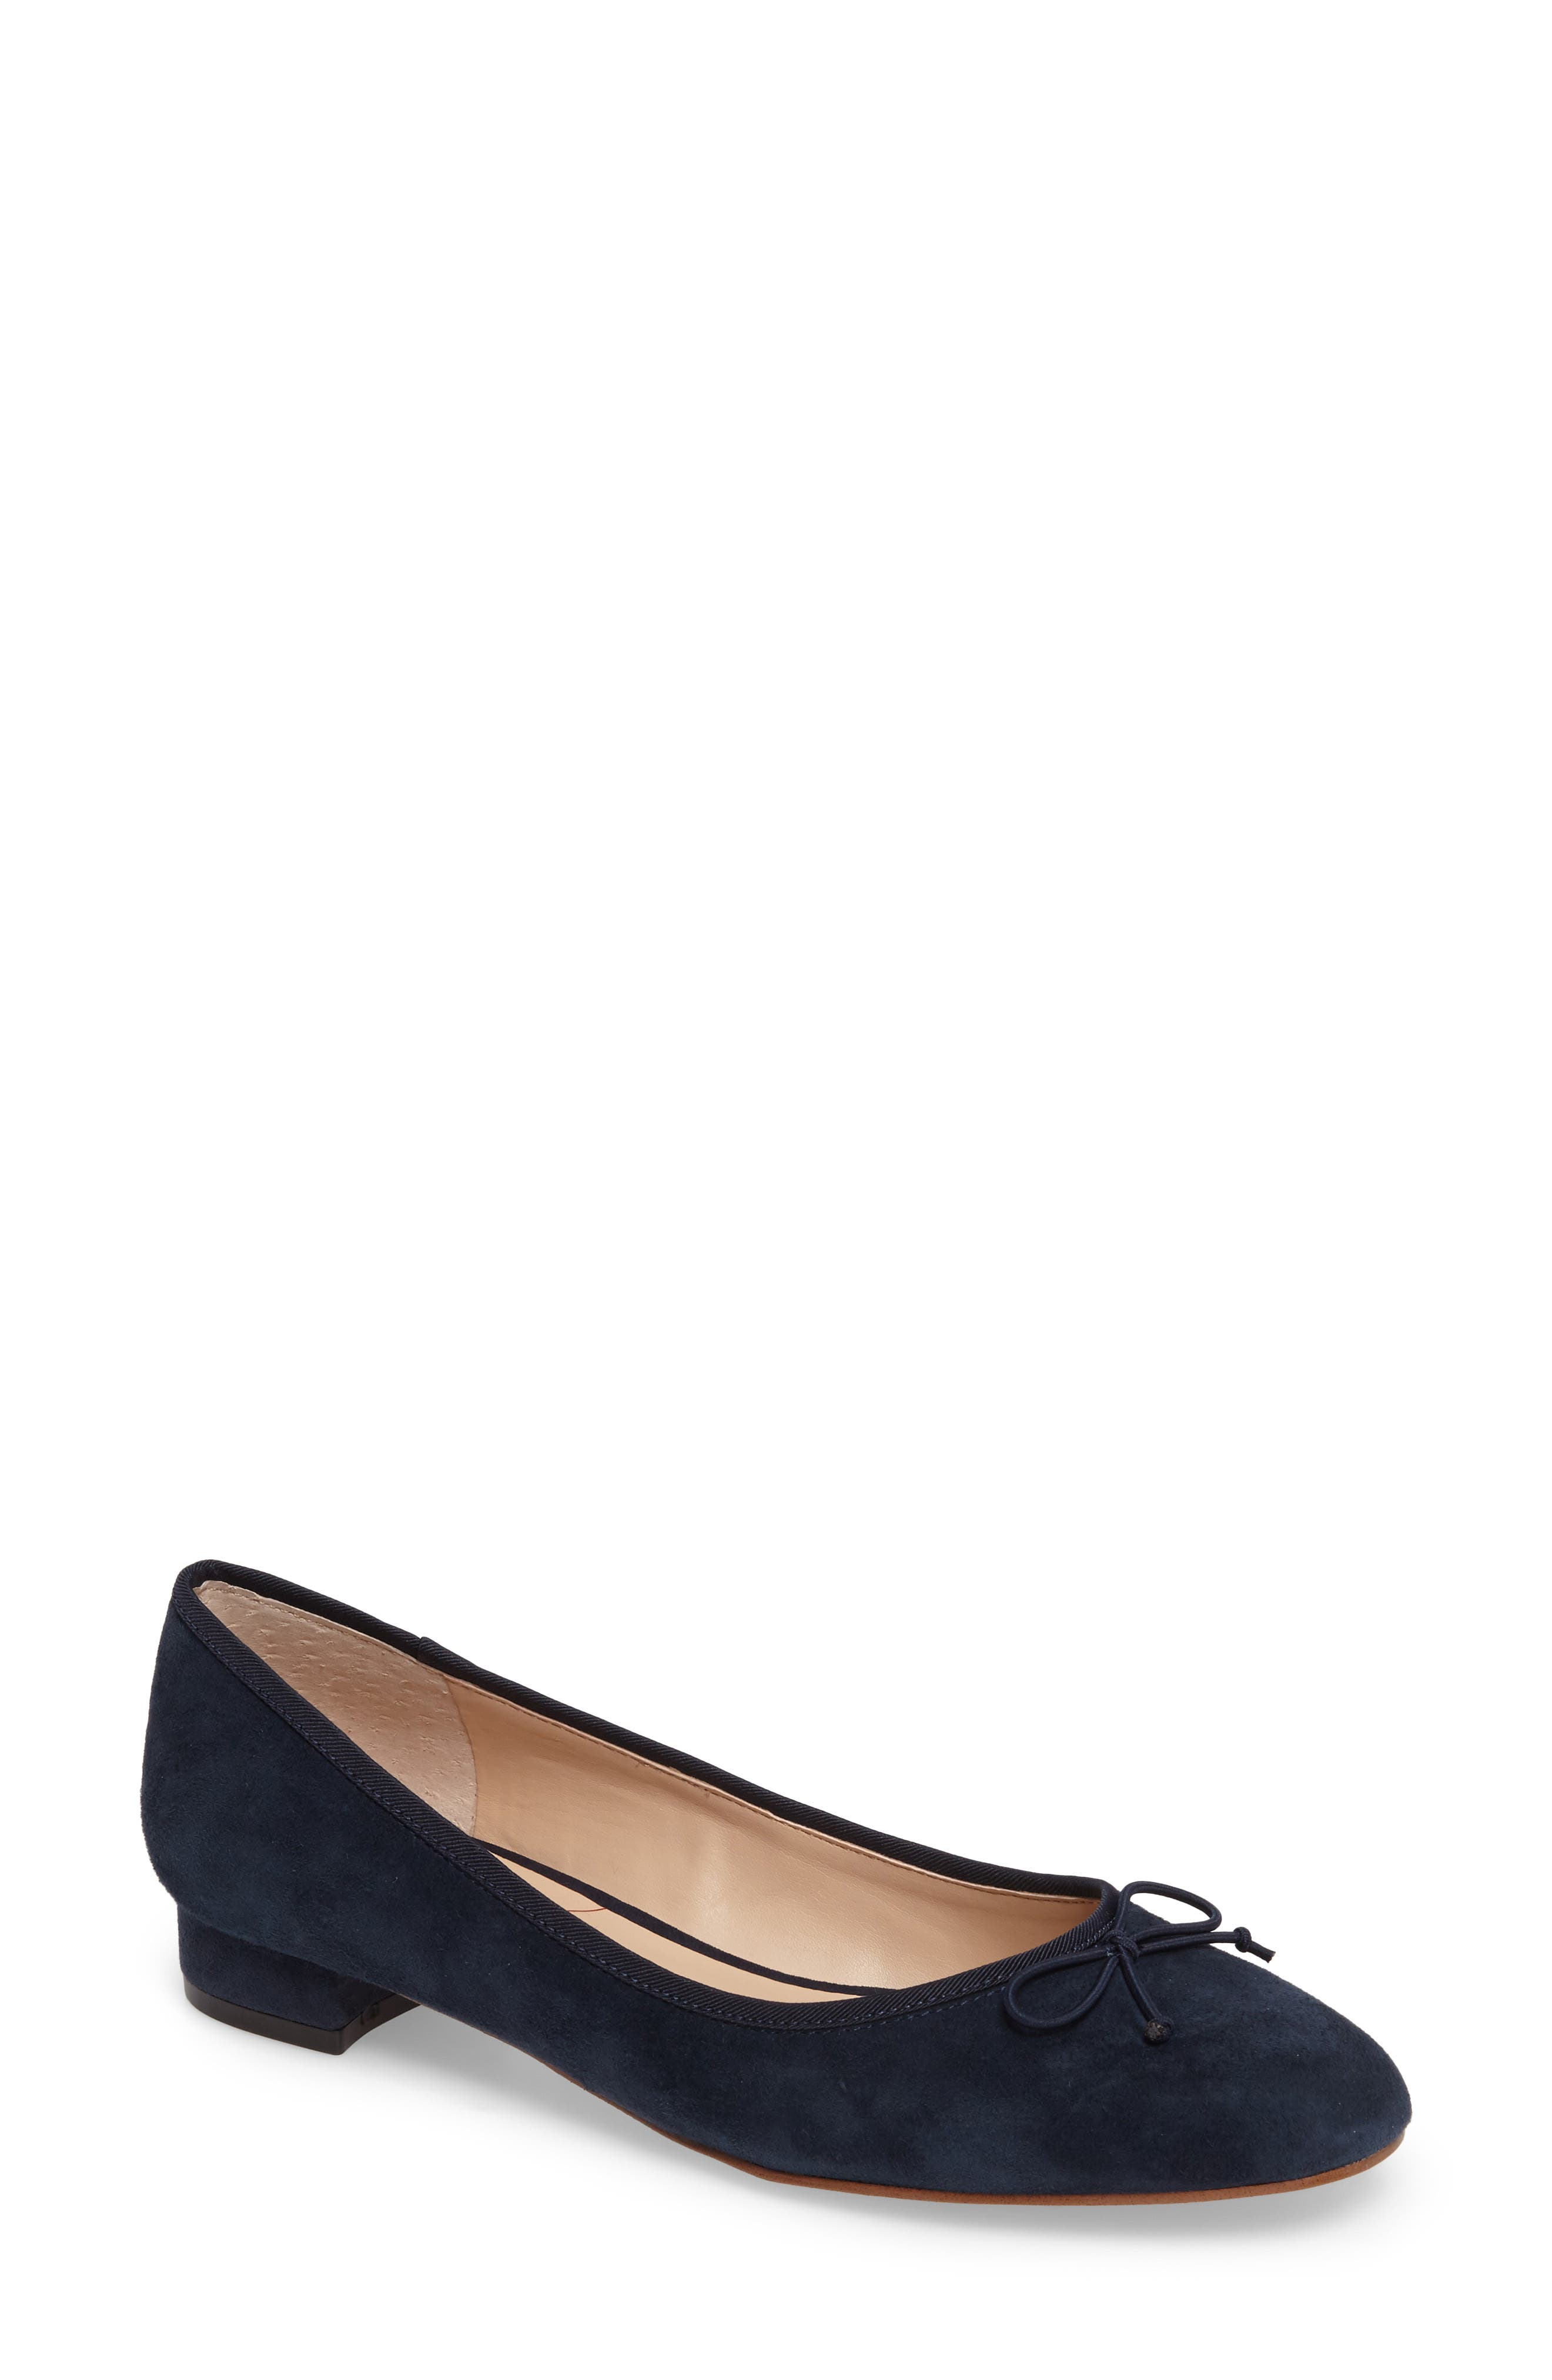 Anastasi Block Heel Flat,                             Main thumbnail 1, color,                             Ombre Blue Suede